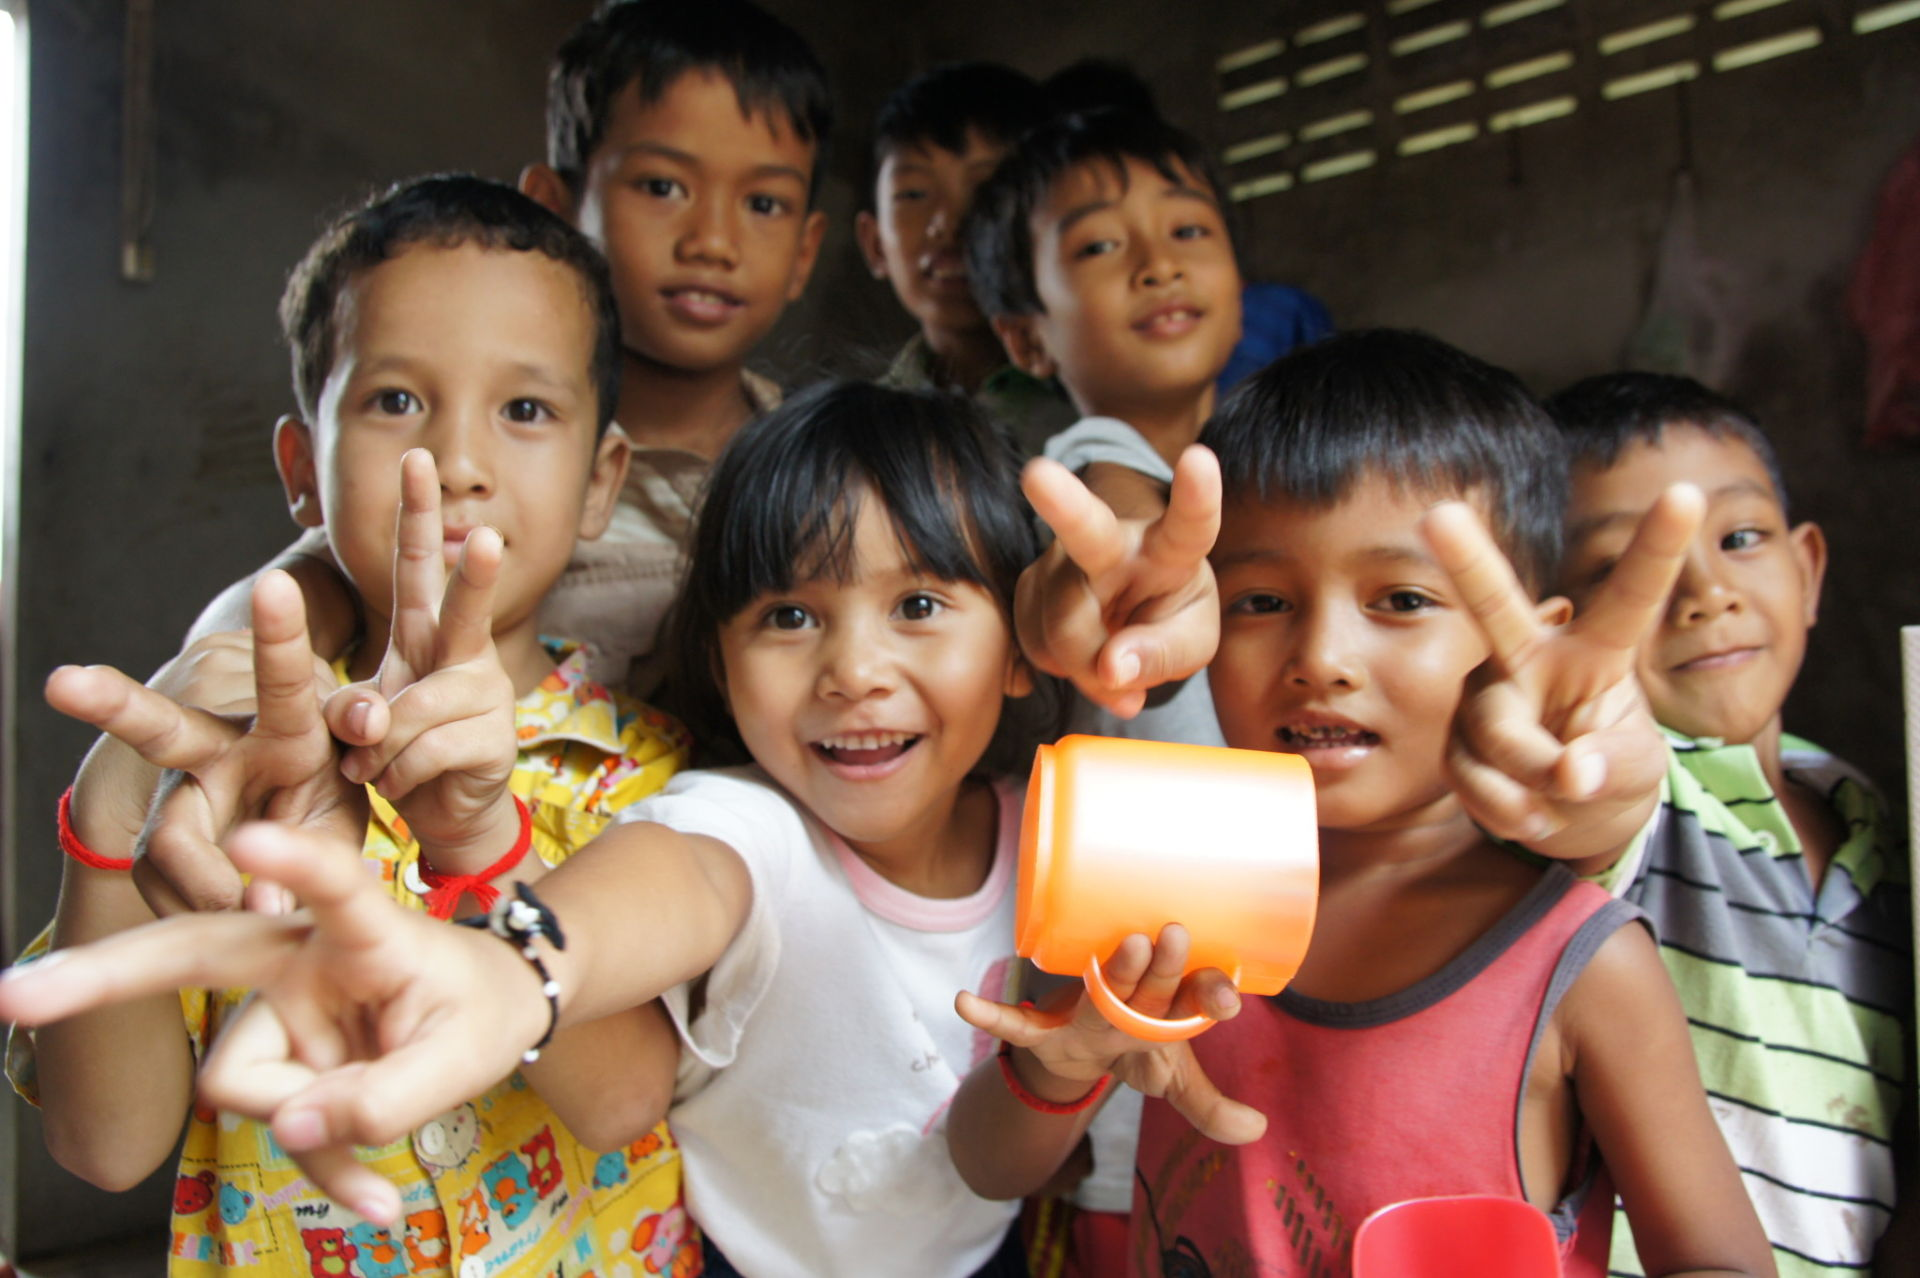 Beautiful smiling children that love the camera. Siem Reap, Cambodia.